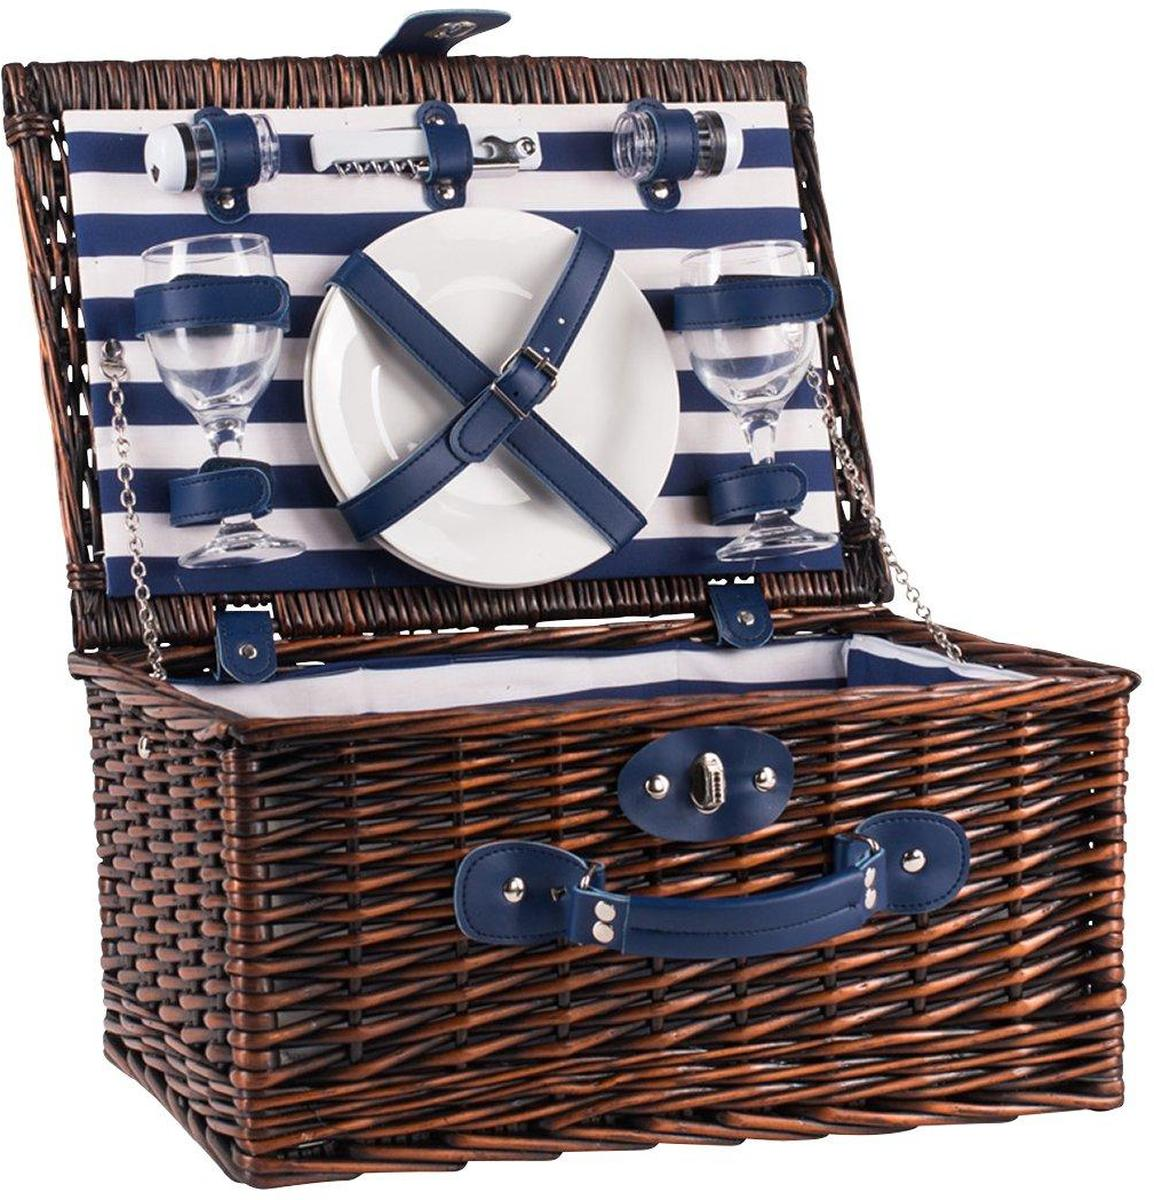 summerhouse-by-navigate-coast-2-person-picnic-basket.jpg